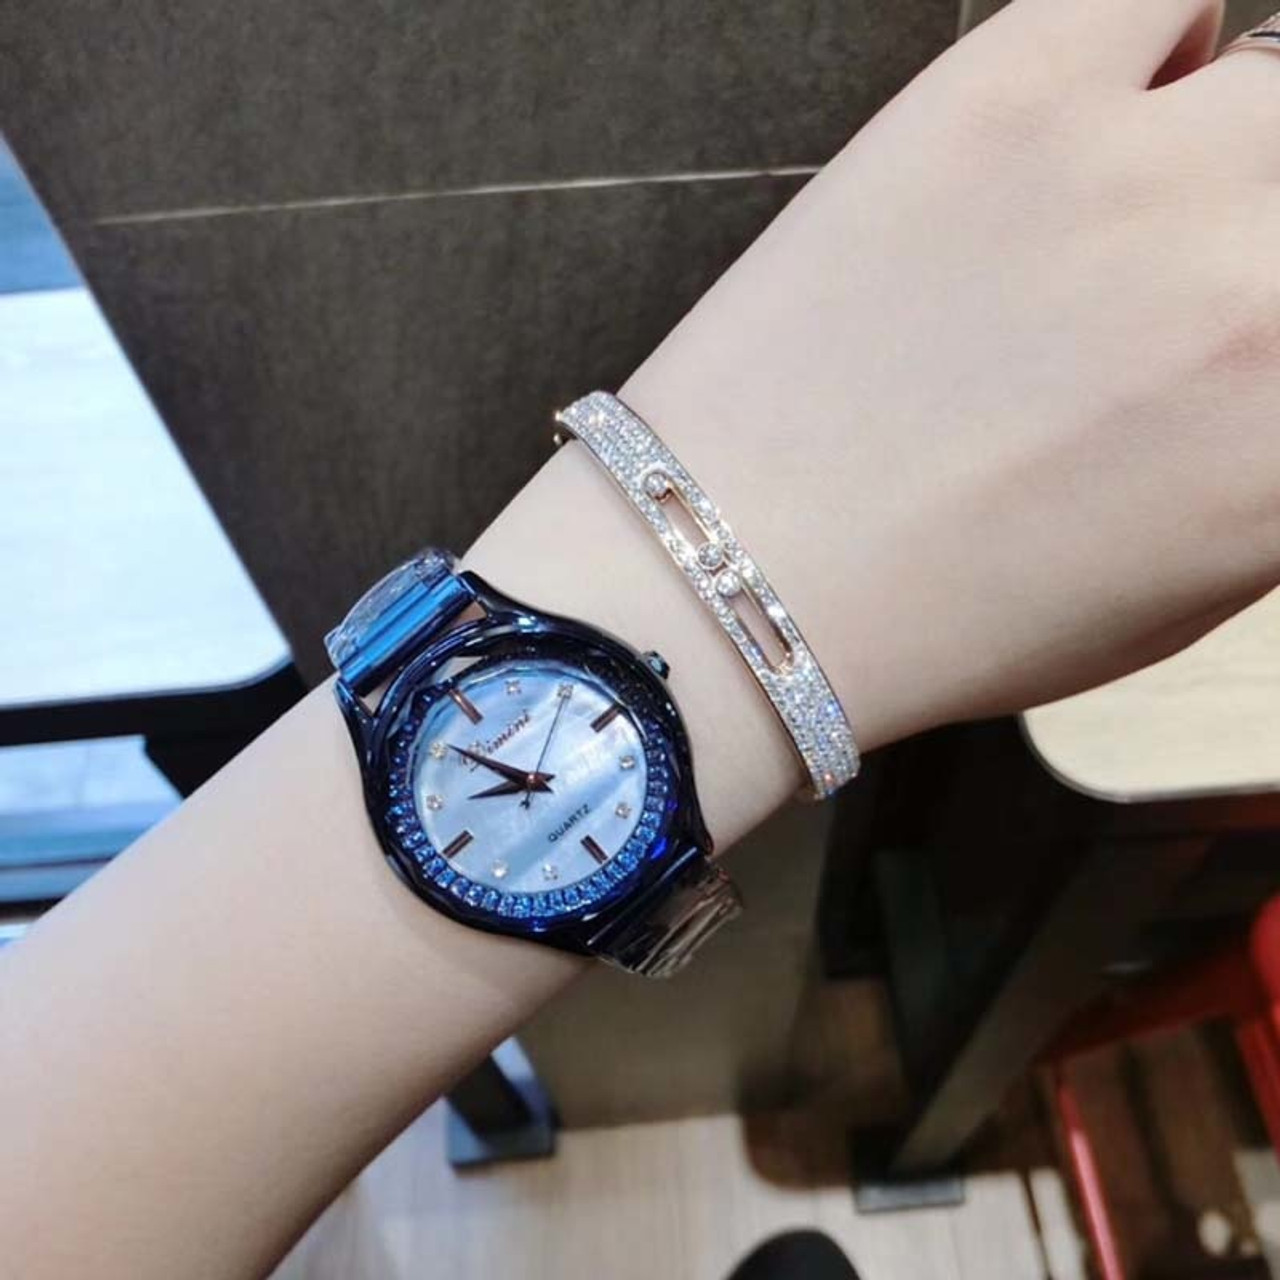 Shiny Crystal DIMINI Lady Women's Watch Japan Quartz Hours Fine Fashion  Jewelry Clock Bracelet Luxury Girl's Gift Diamond watch